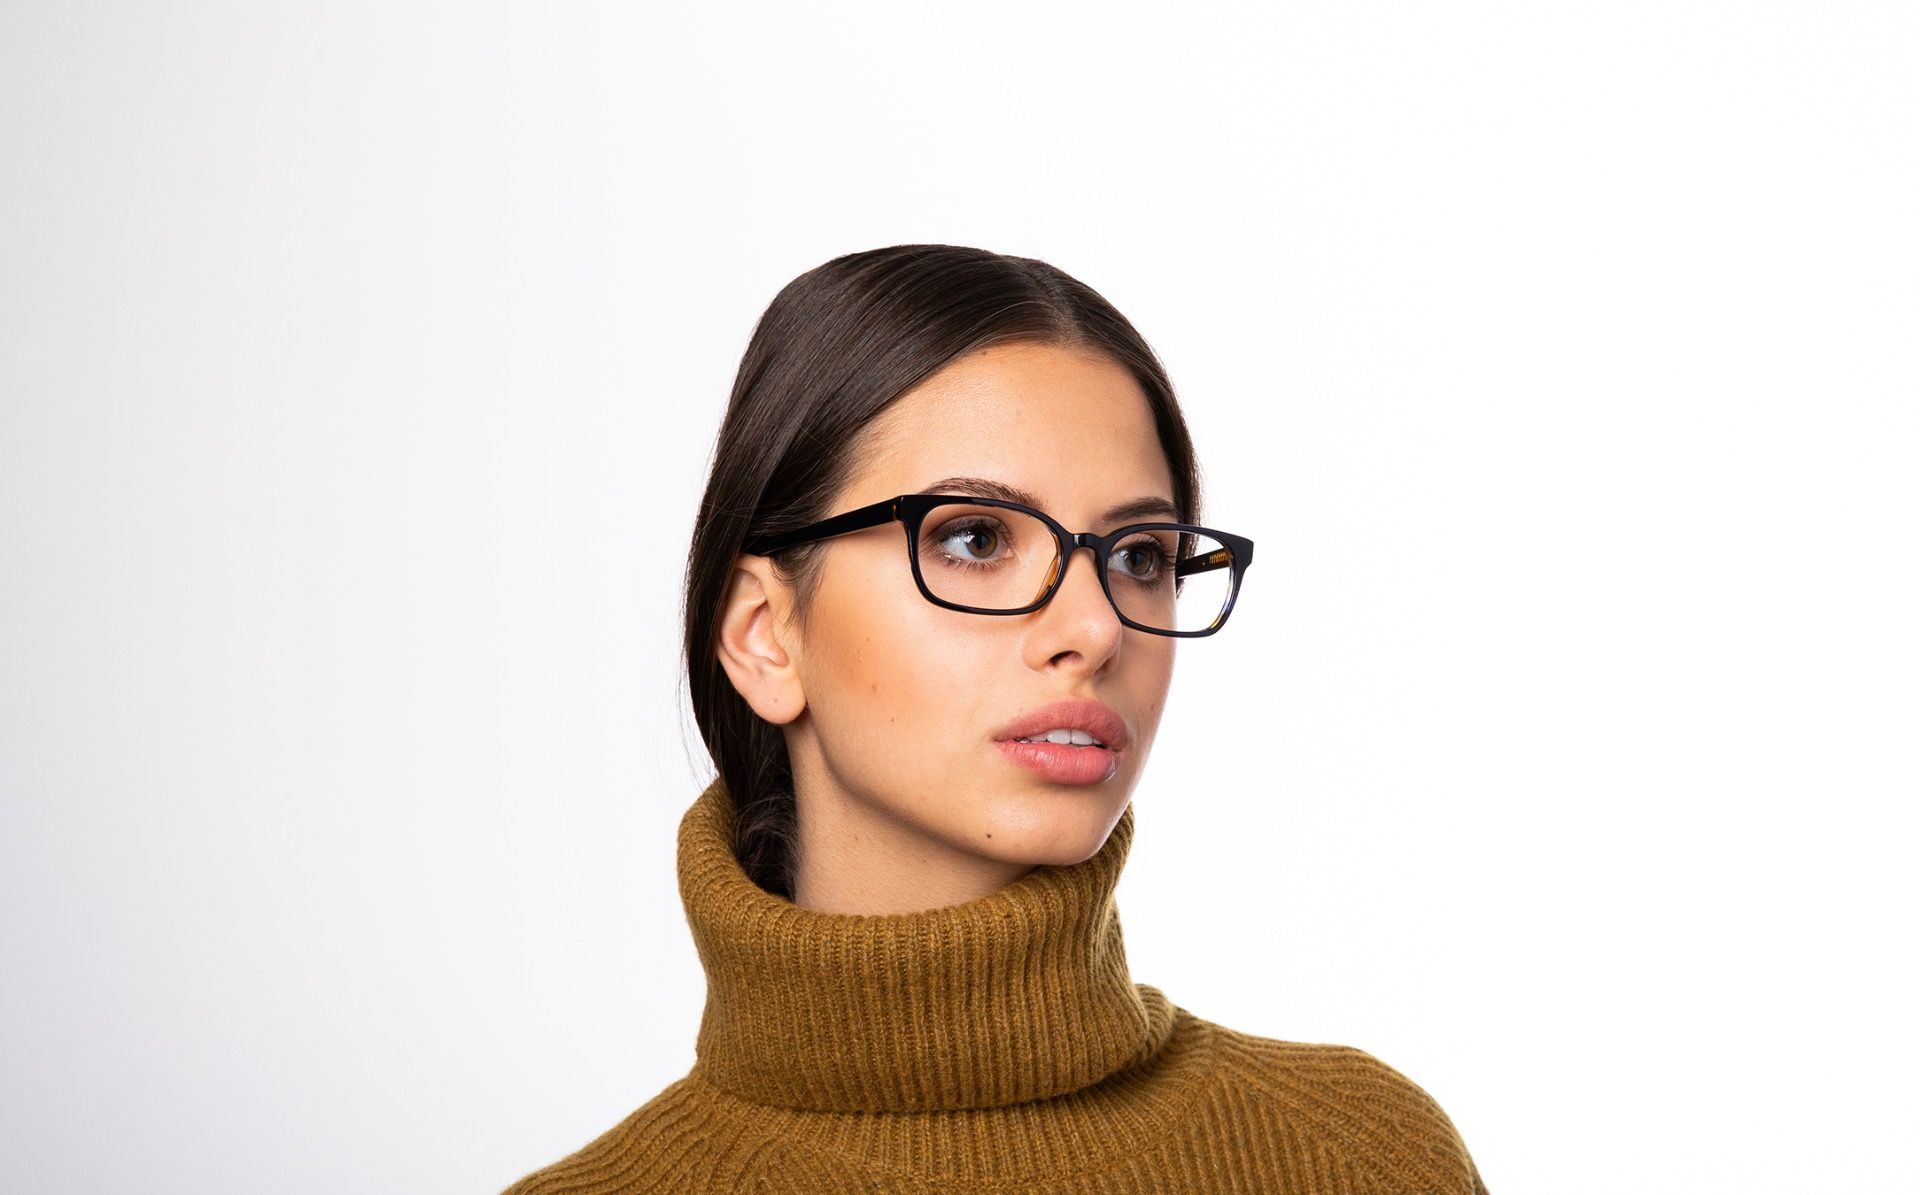 perkin polette glasses model view 01